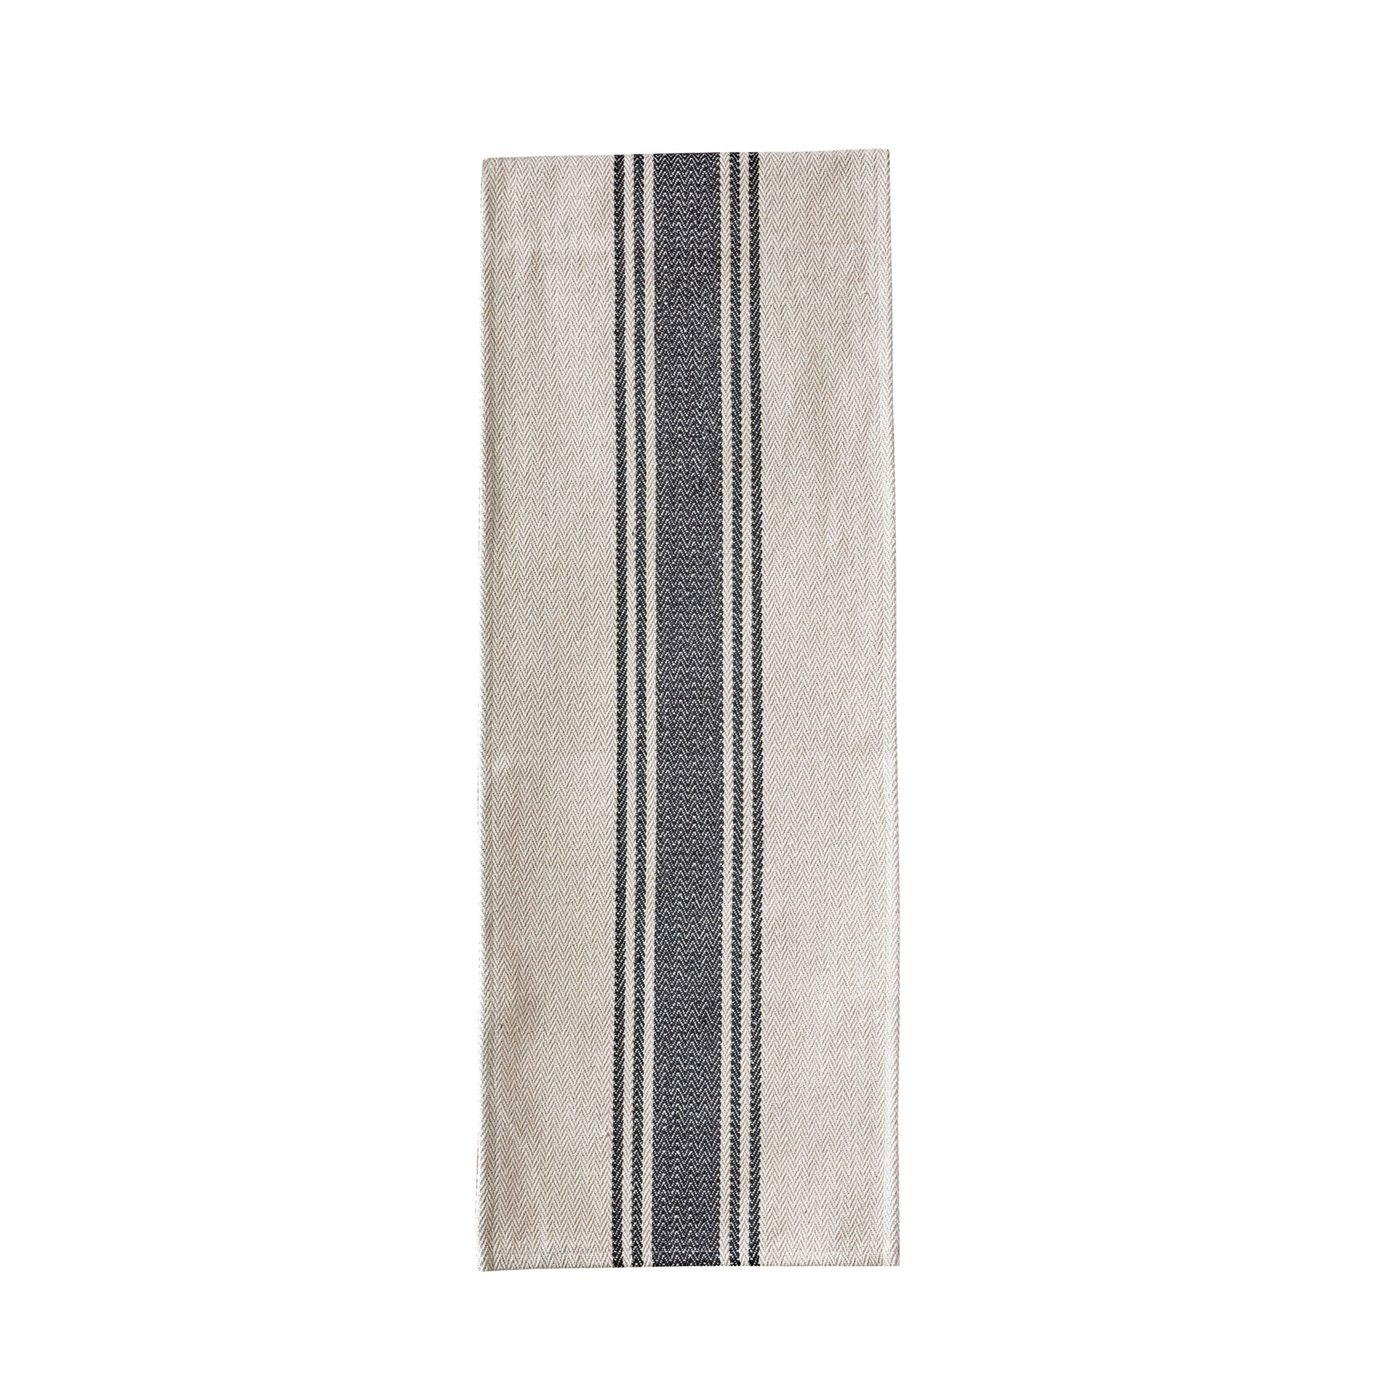 Canvas Table Runner with Black Stripes